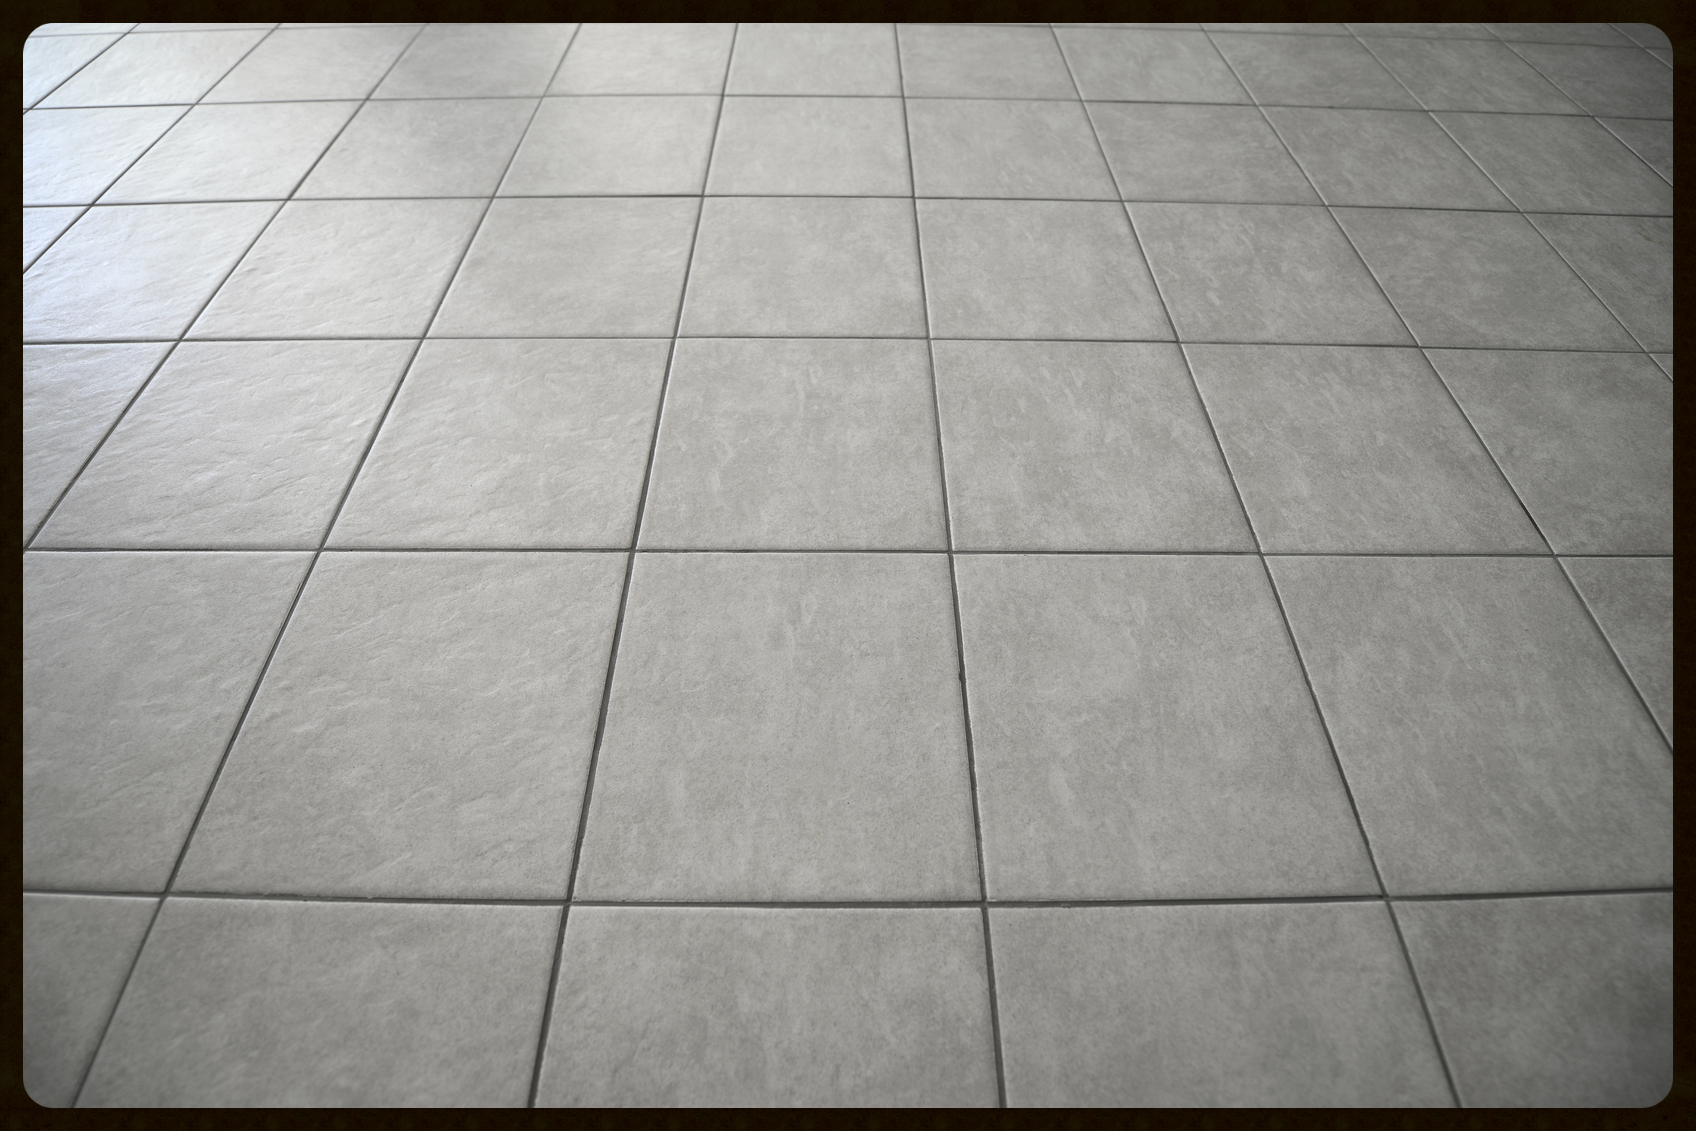 tile flooring options in Wayne county Ohio